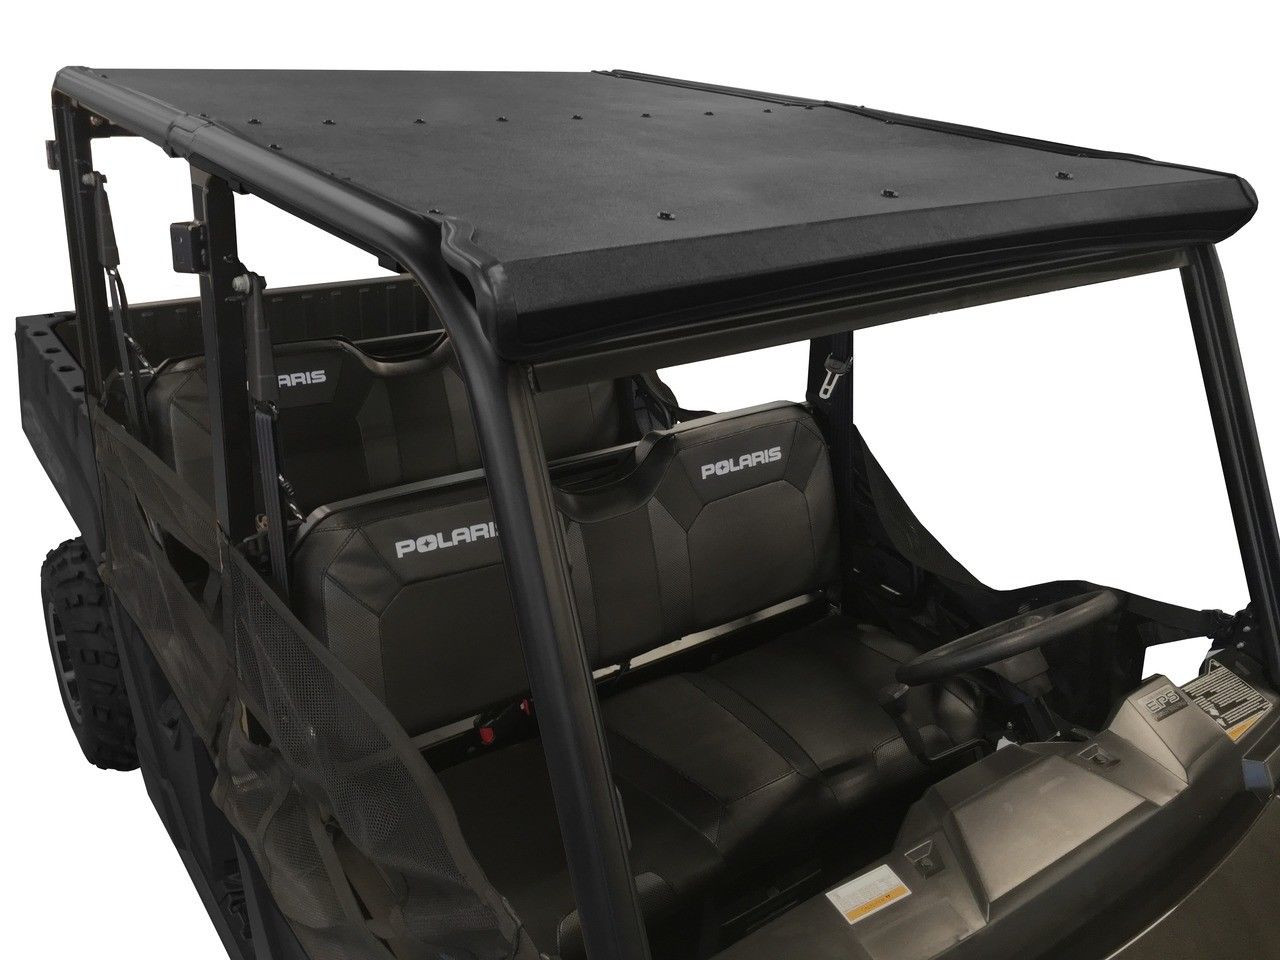 Polaris Ranger 800 Midsize 2013-2014 Black Polyethylene Hard Top Roof TWO PIECE